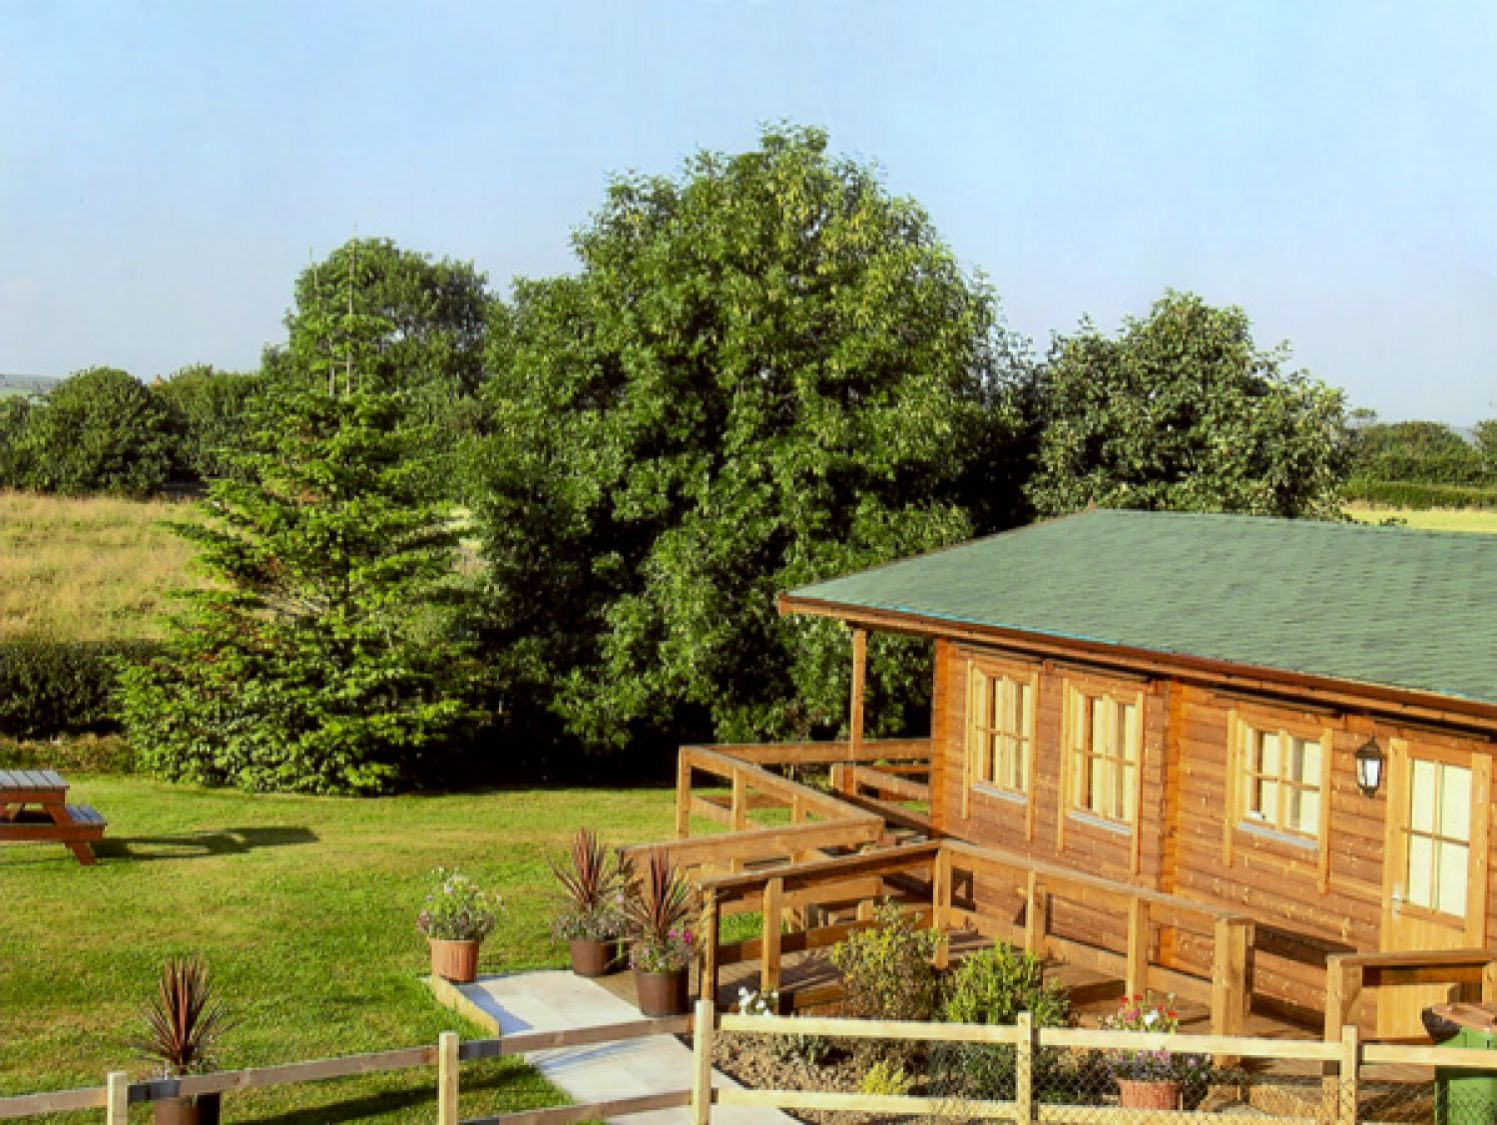 Thornlea Log Cabin, Whitby,North Yorkshire,England